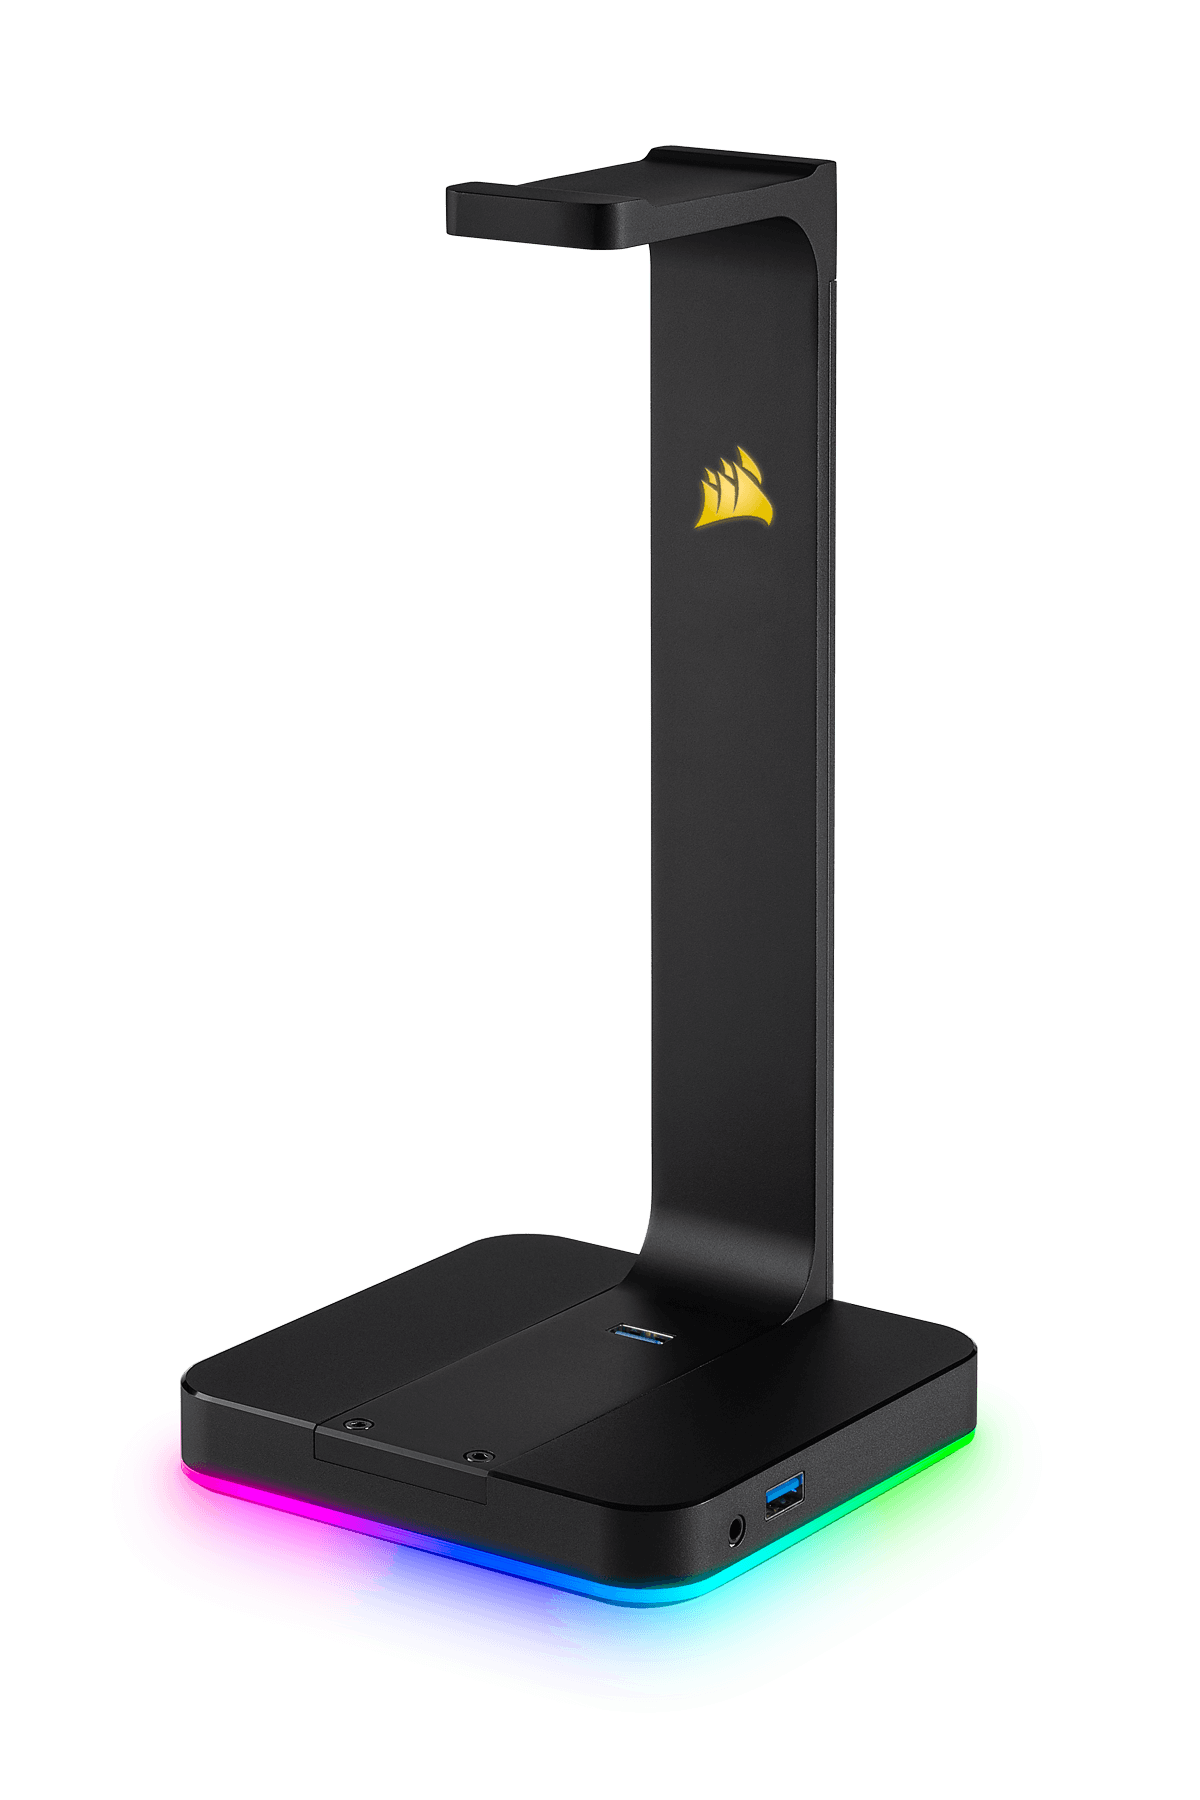 CORSAIR GAMING ST100 RGB Premium Headset Stand with 7 1